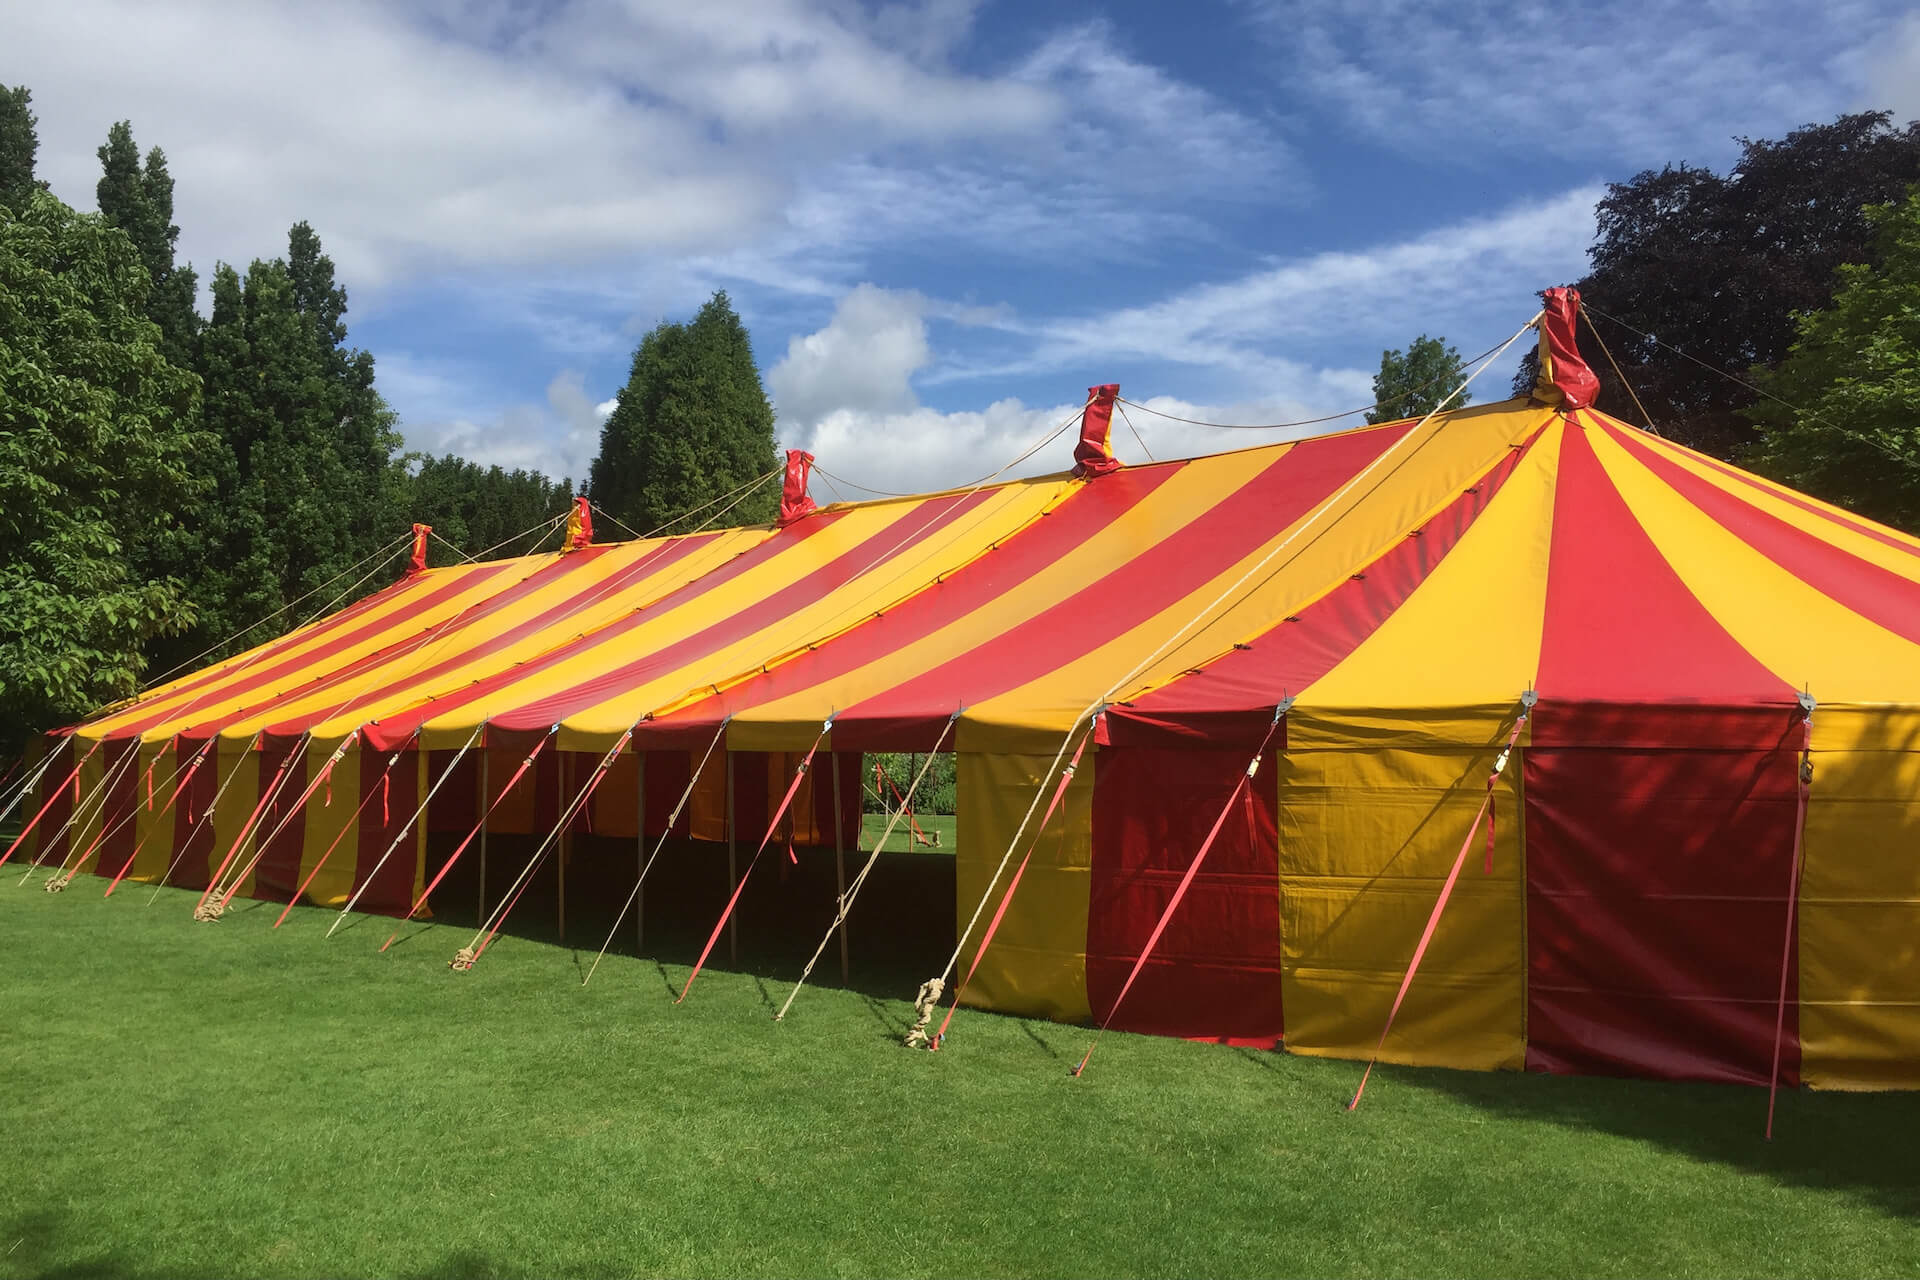 40x120 ft Colourful red and yellow marquee